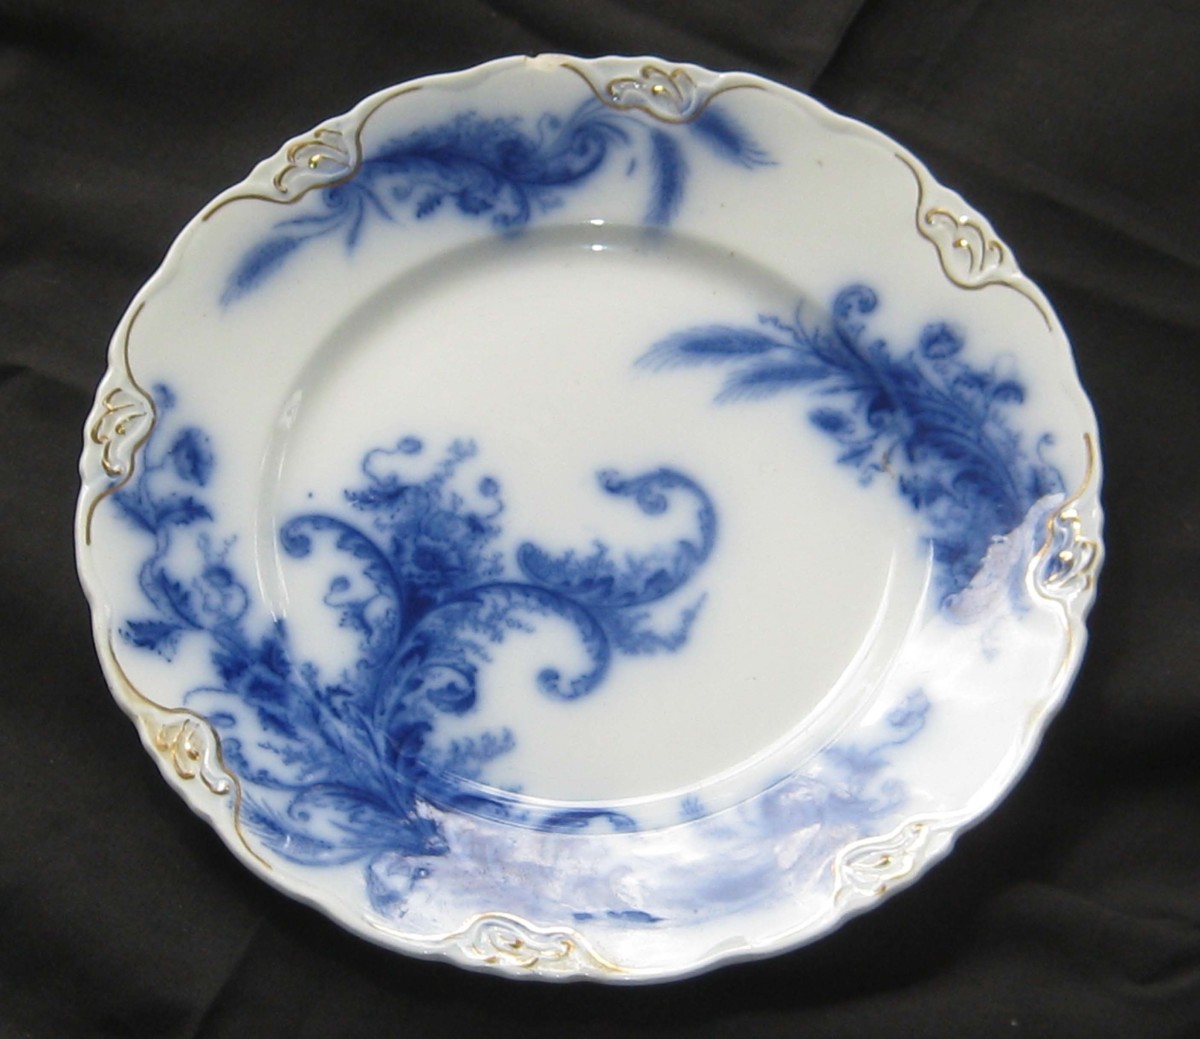 Flow Blue History And Value Of Blue And White Antique